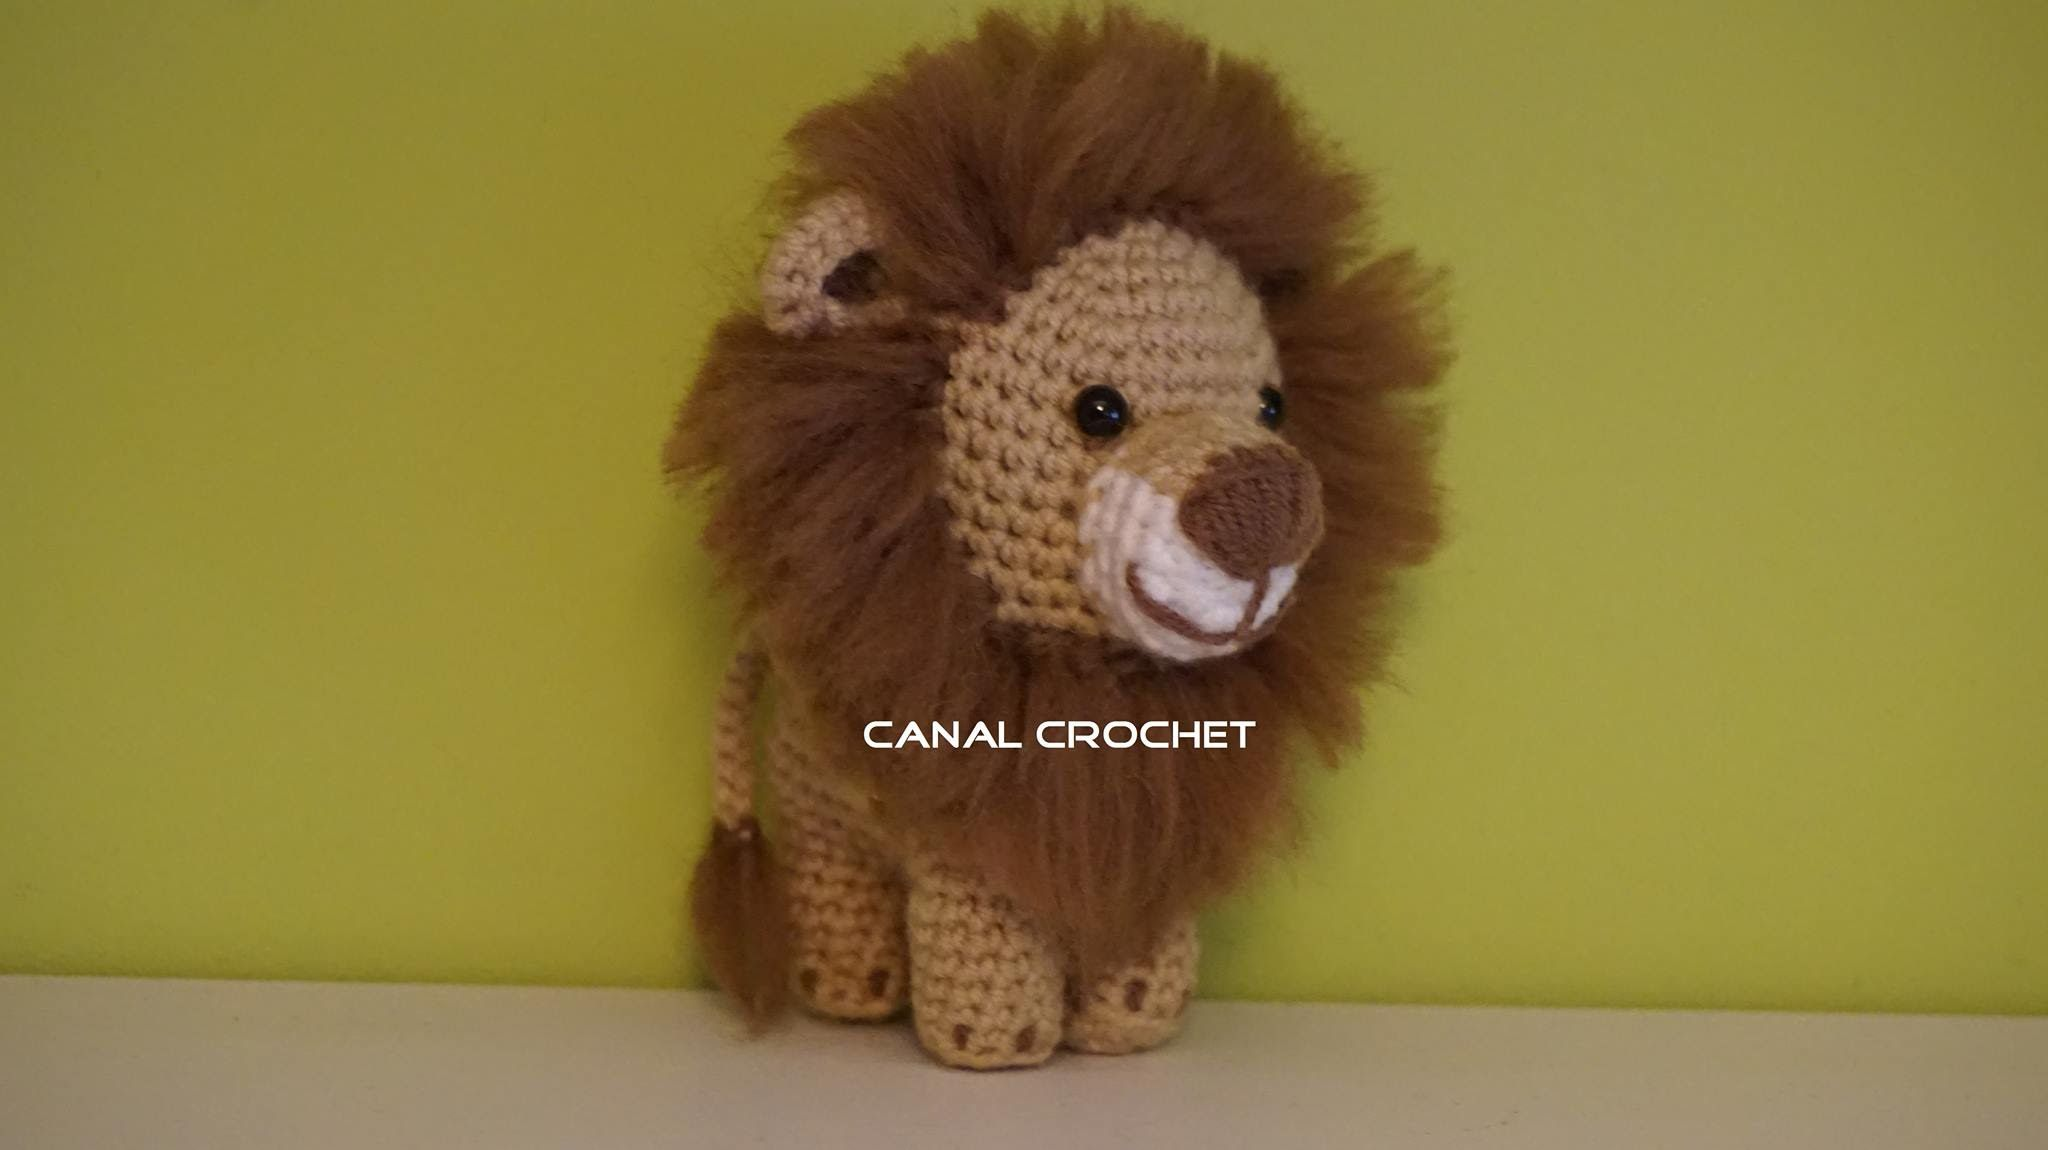 https://www.facebook.com/Canal-crochet-1166416096719575/ http ...